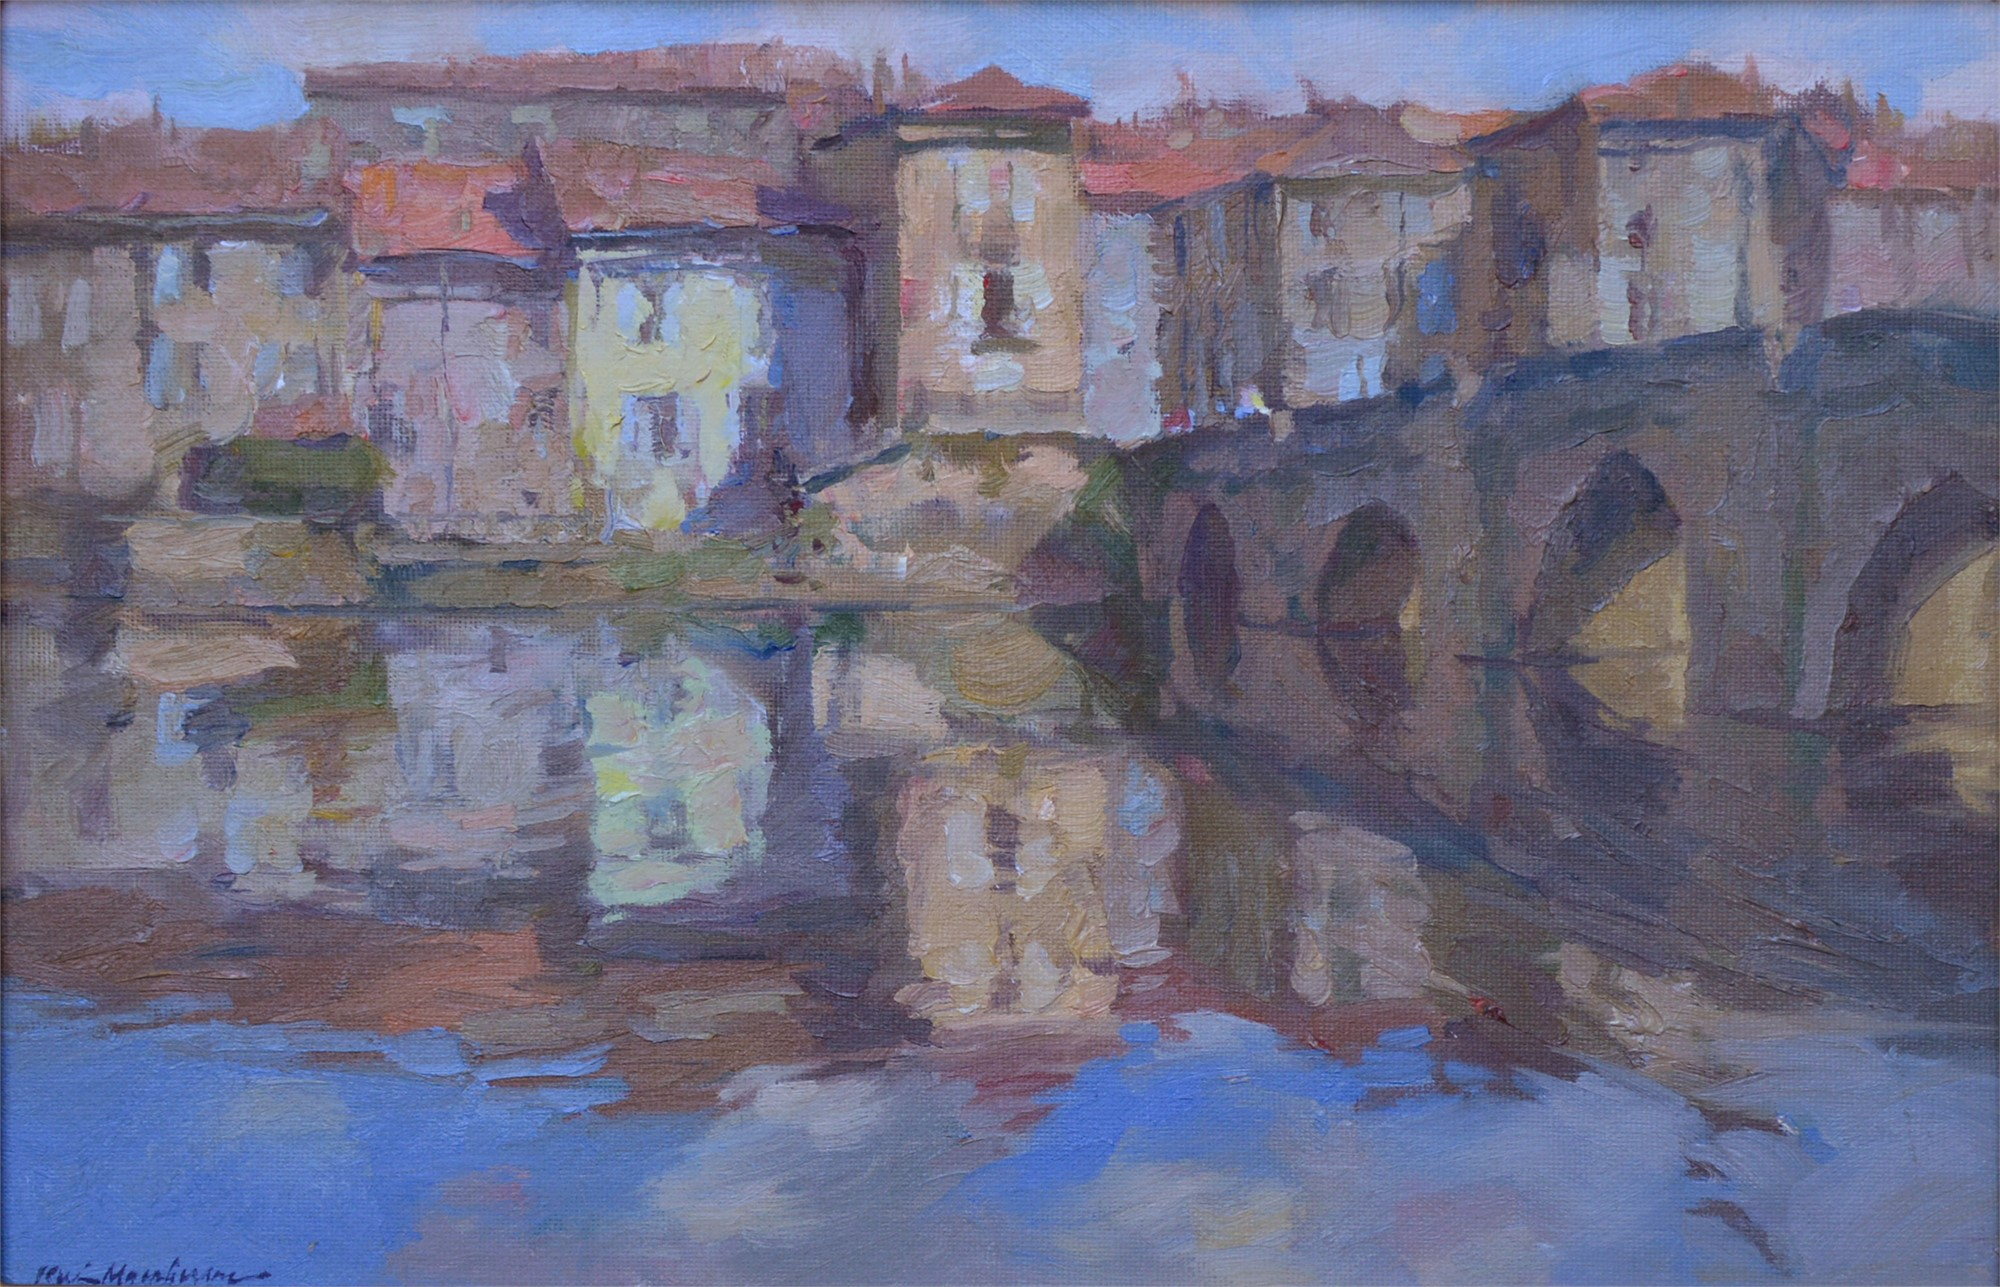 A Bridge to Cross (France) by Kevin Macpherson